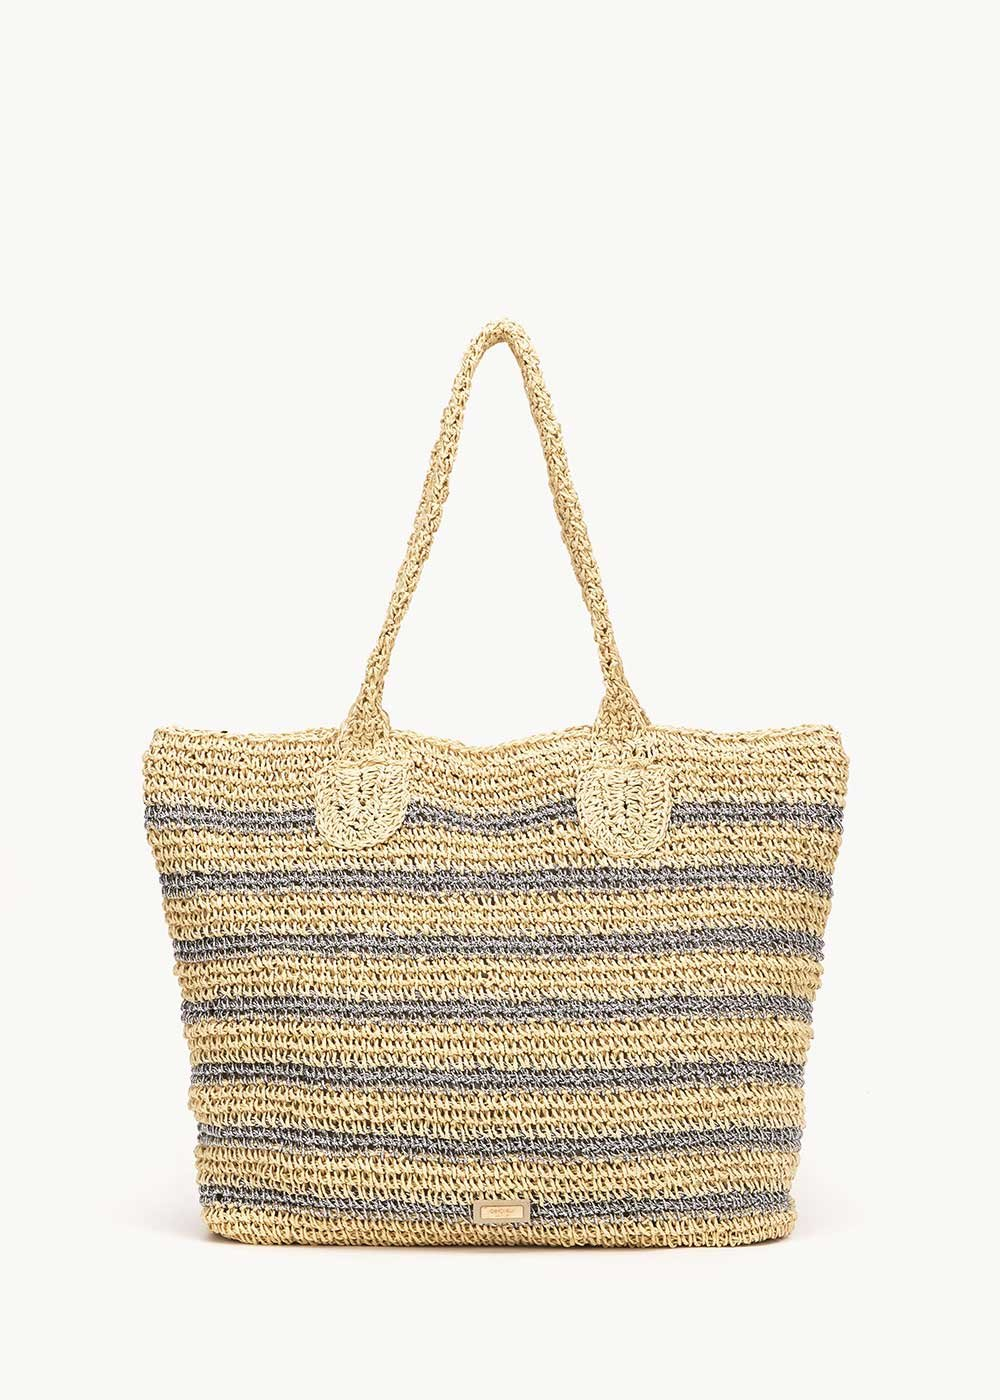 Shopping bag Bady in paglia - Light Beige / Silver - Donna